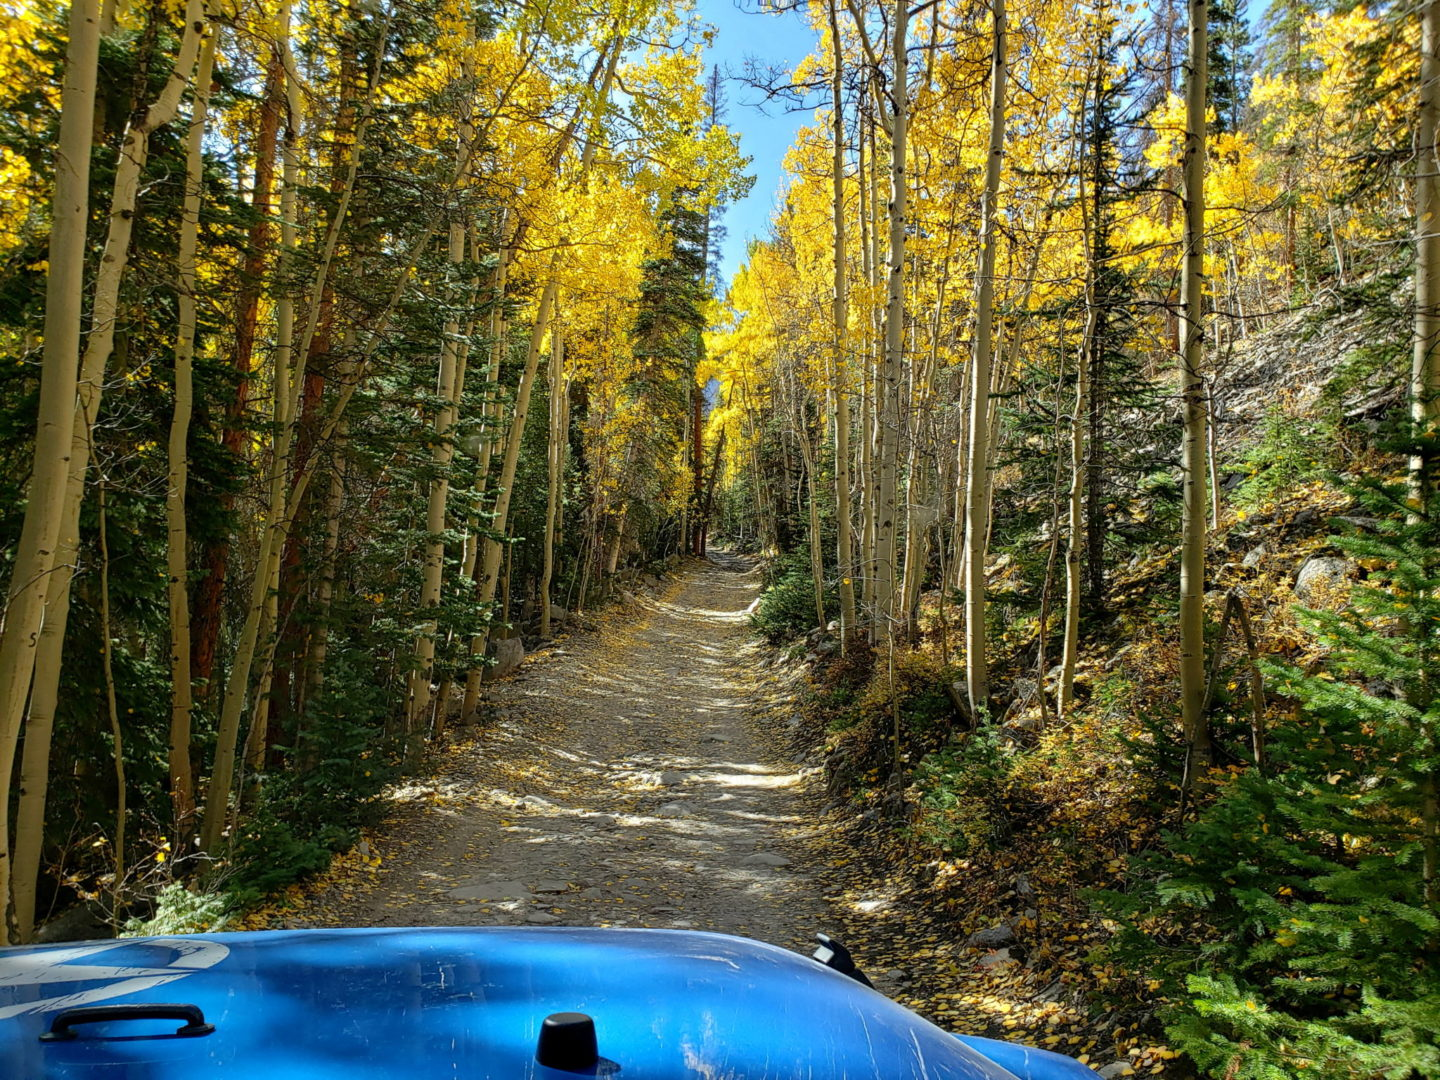 The beginning of Road 277 in fall colors